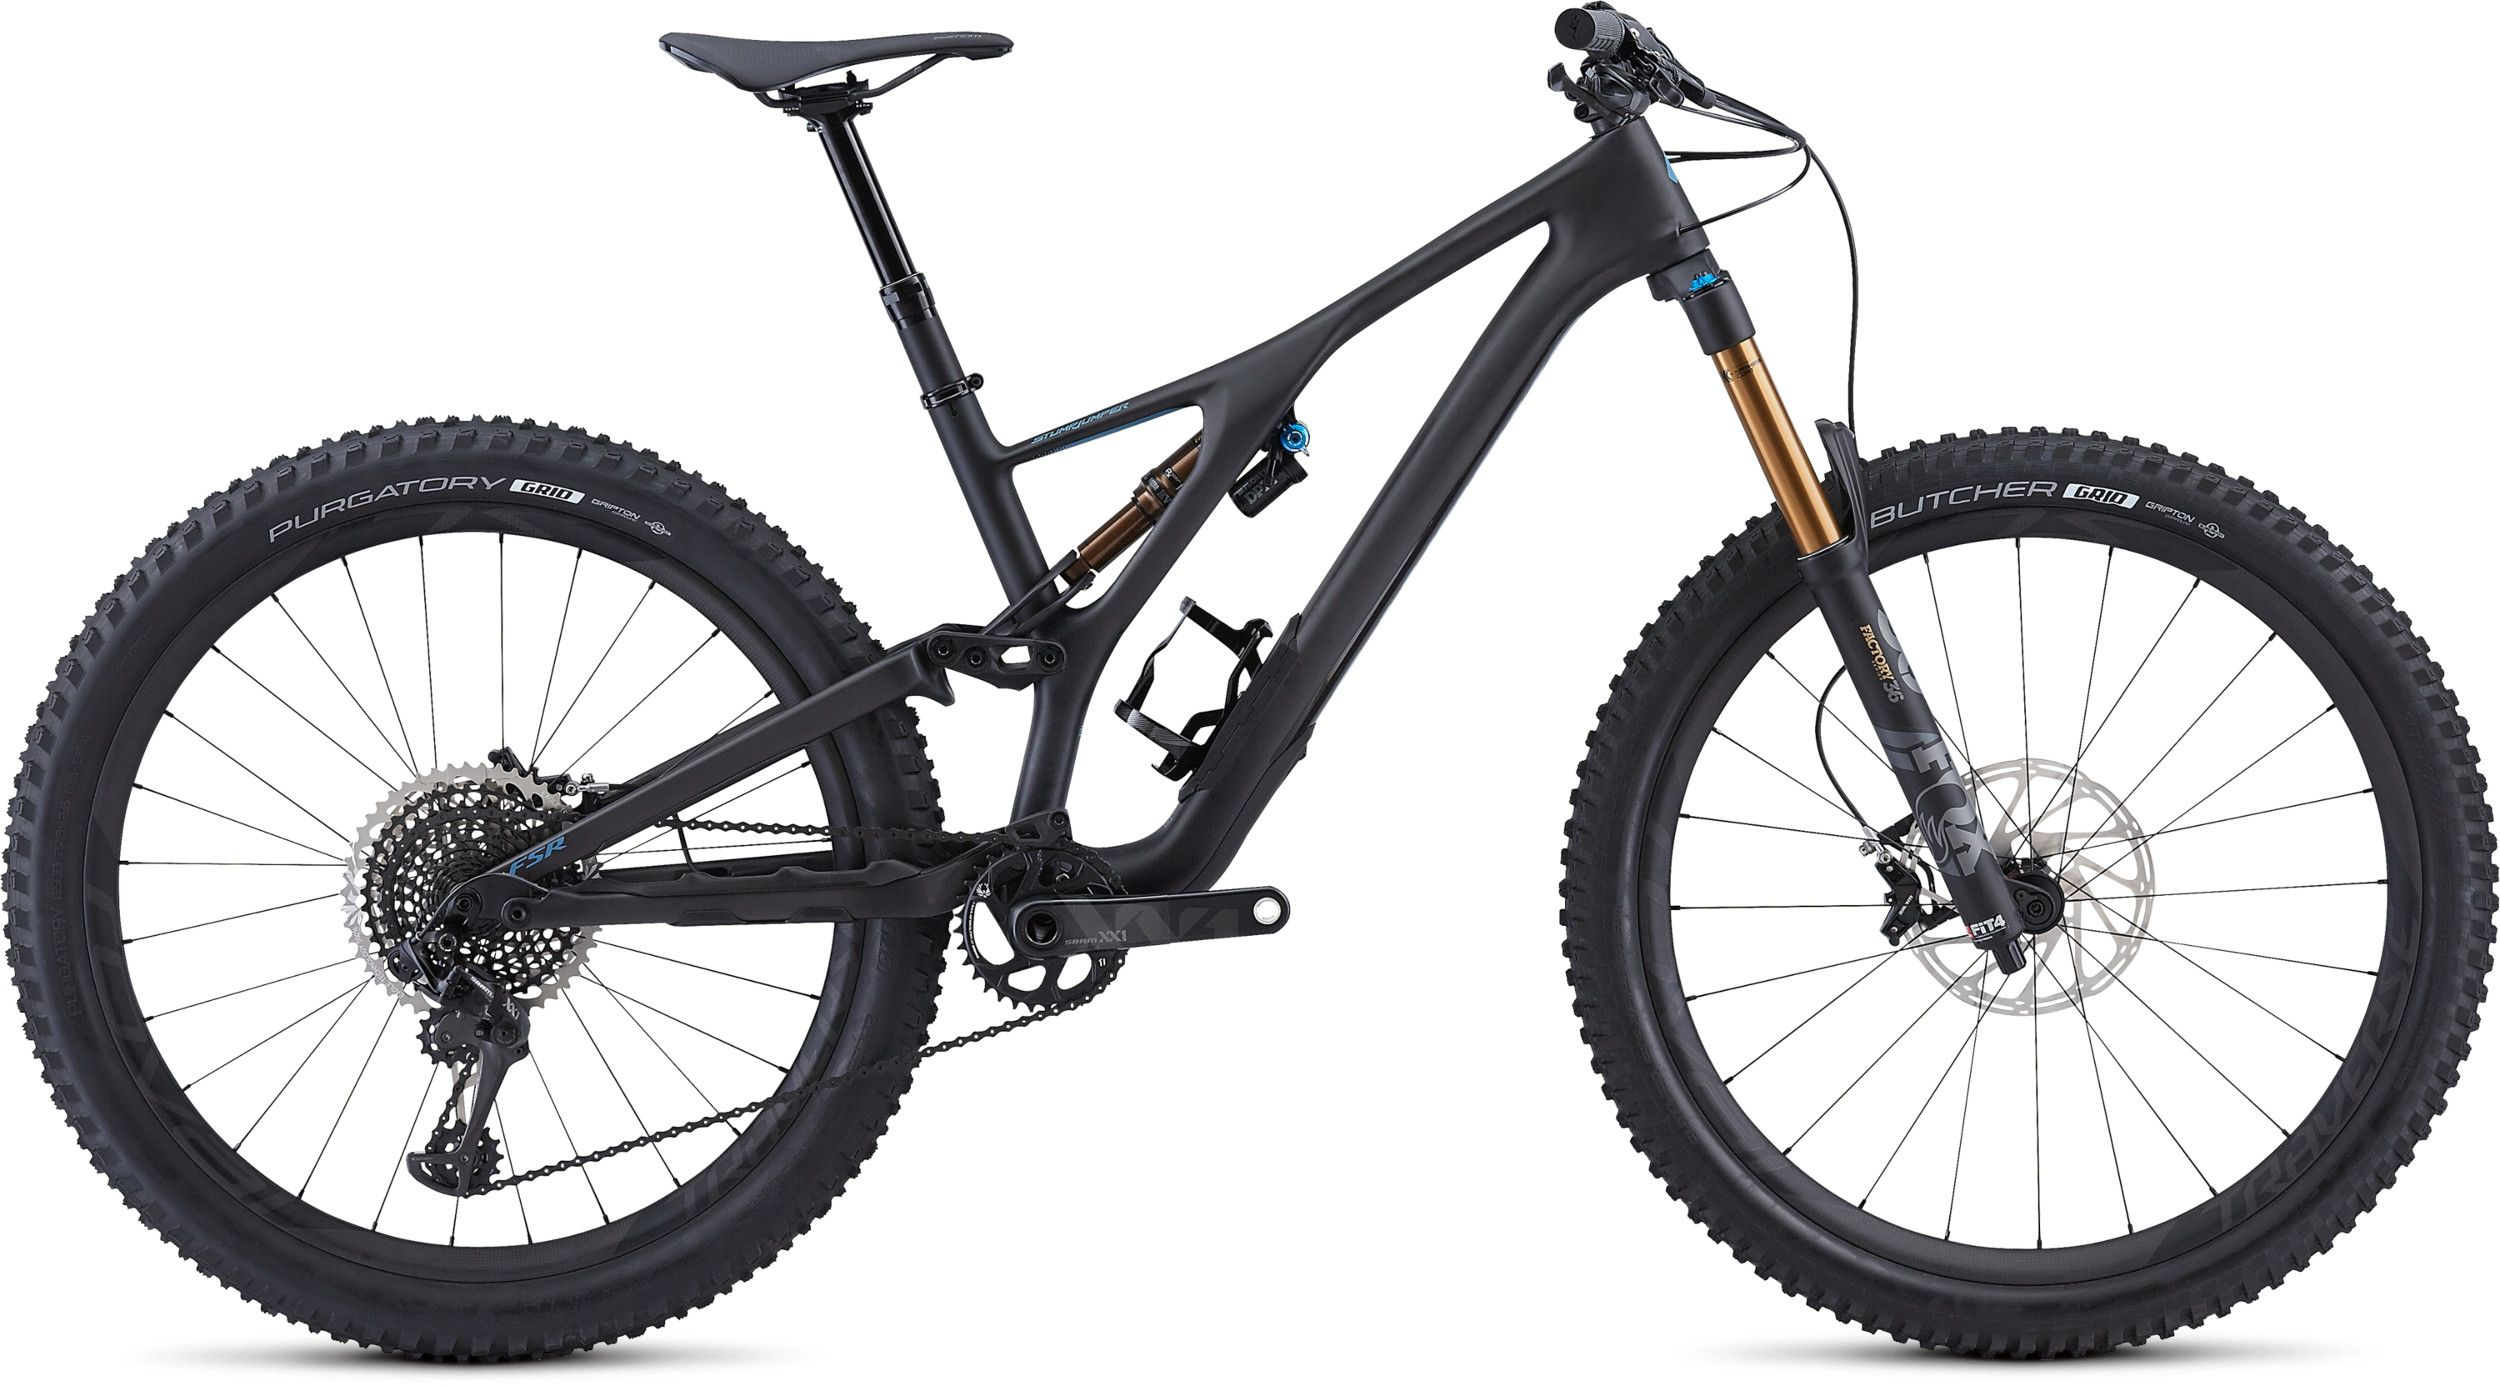 10 Hardcore Hardtail Mountain Bikes For 2019 My Current Drug Of